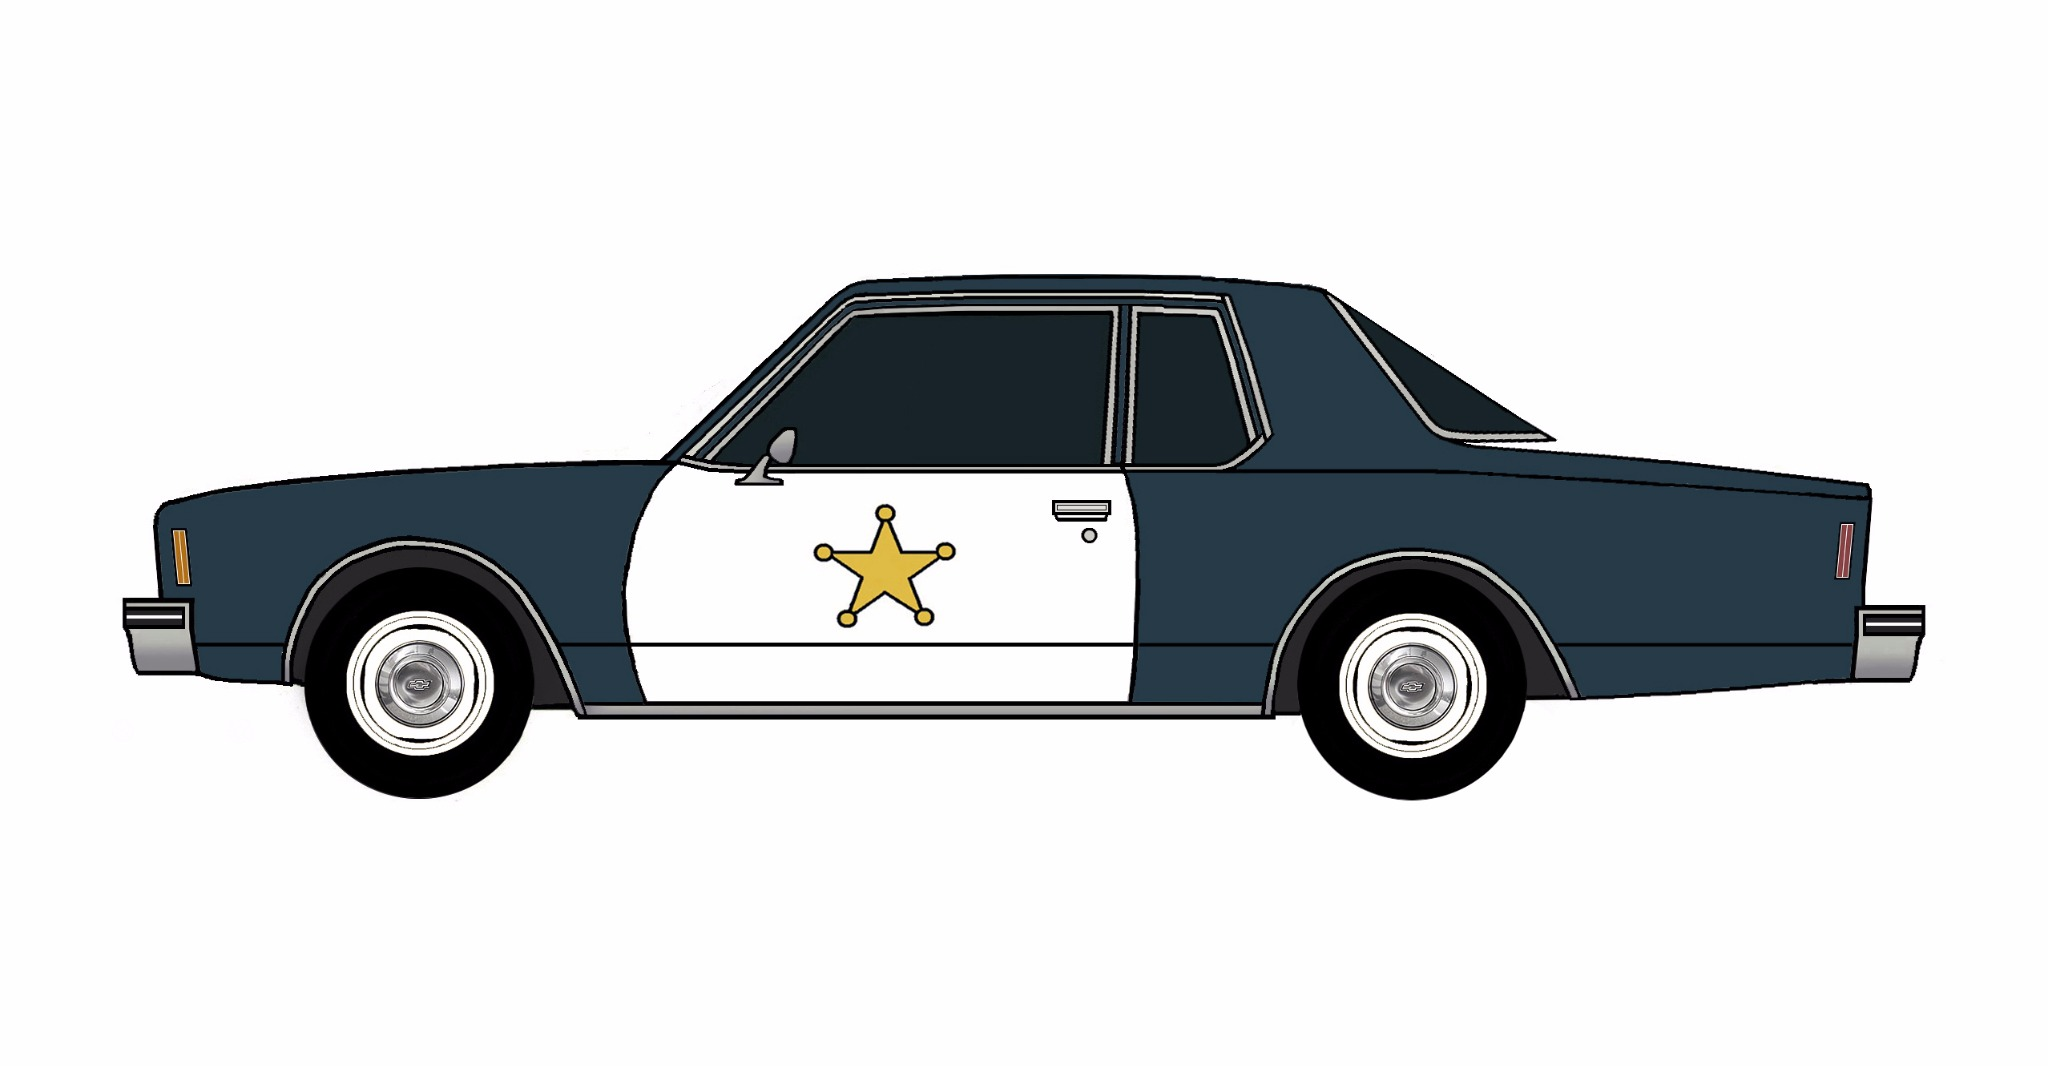 1977 Chevy Impala Police Coupe NAVY BLUE